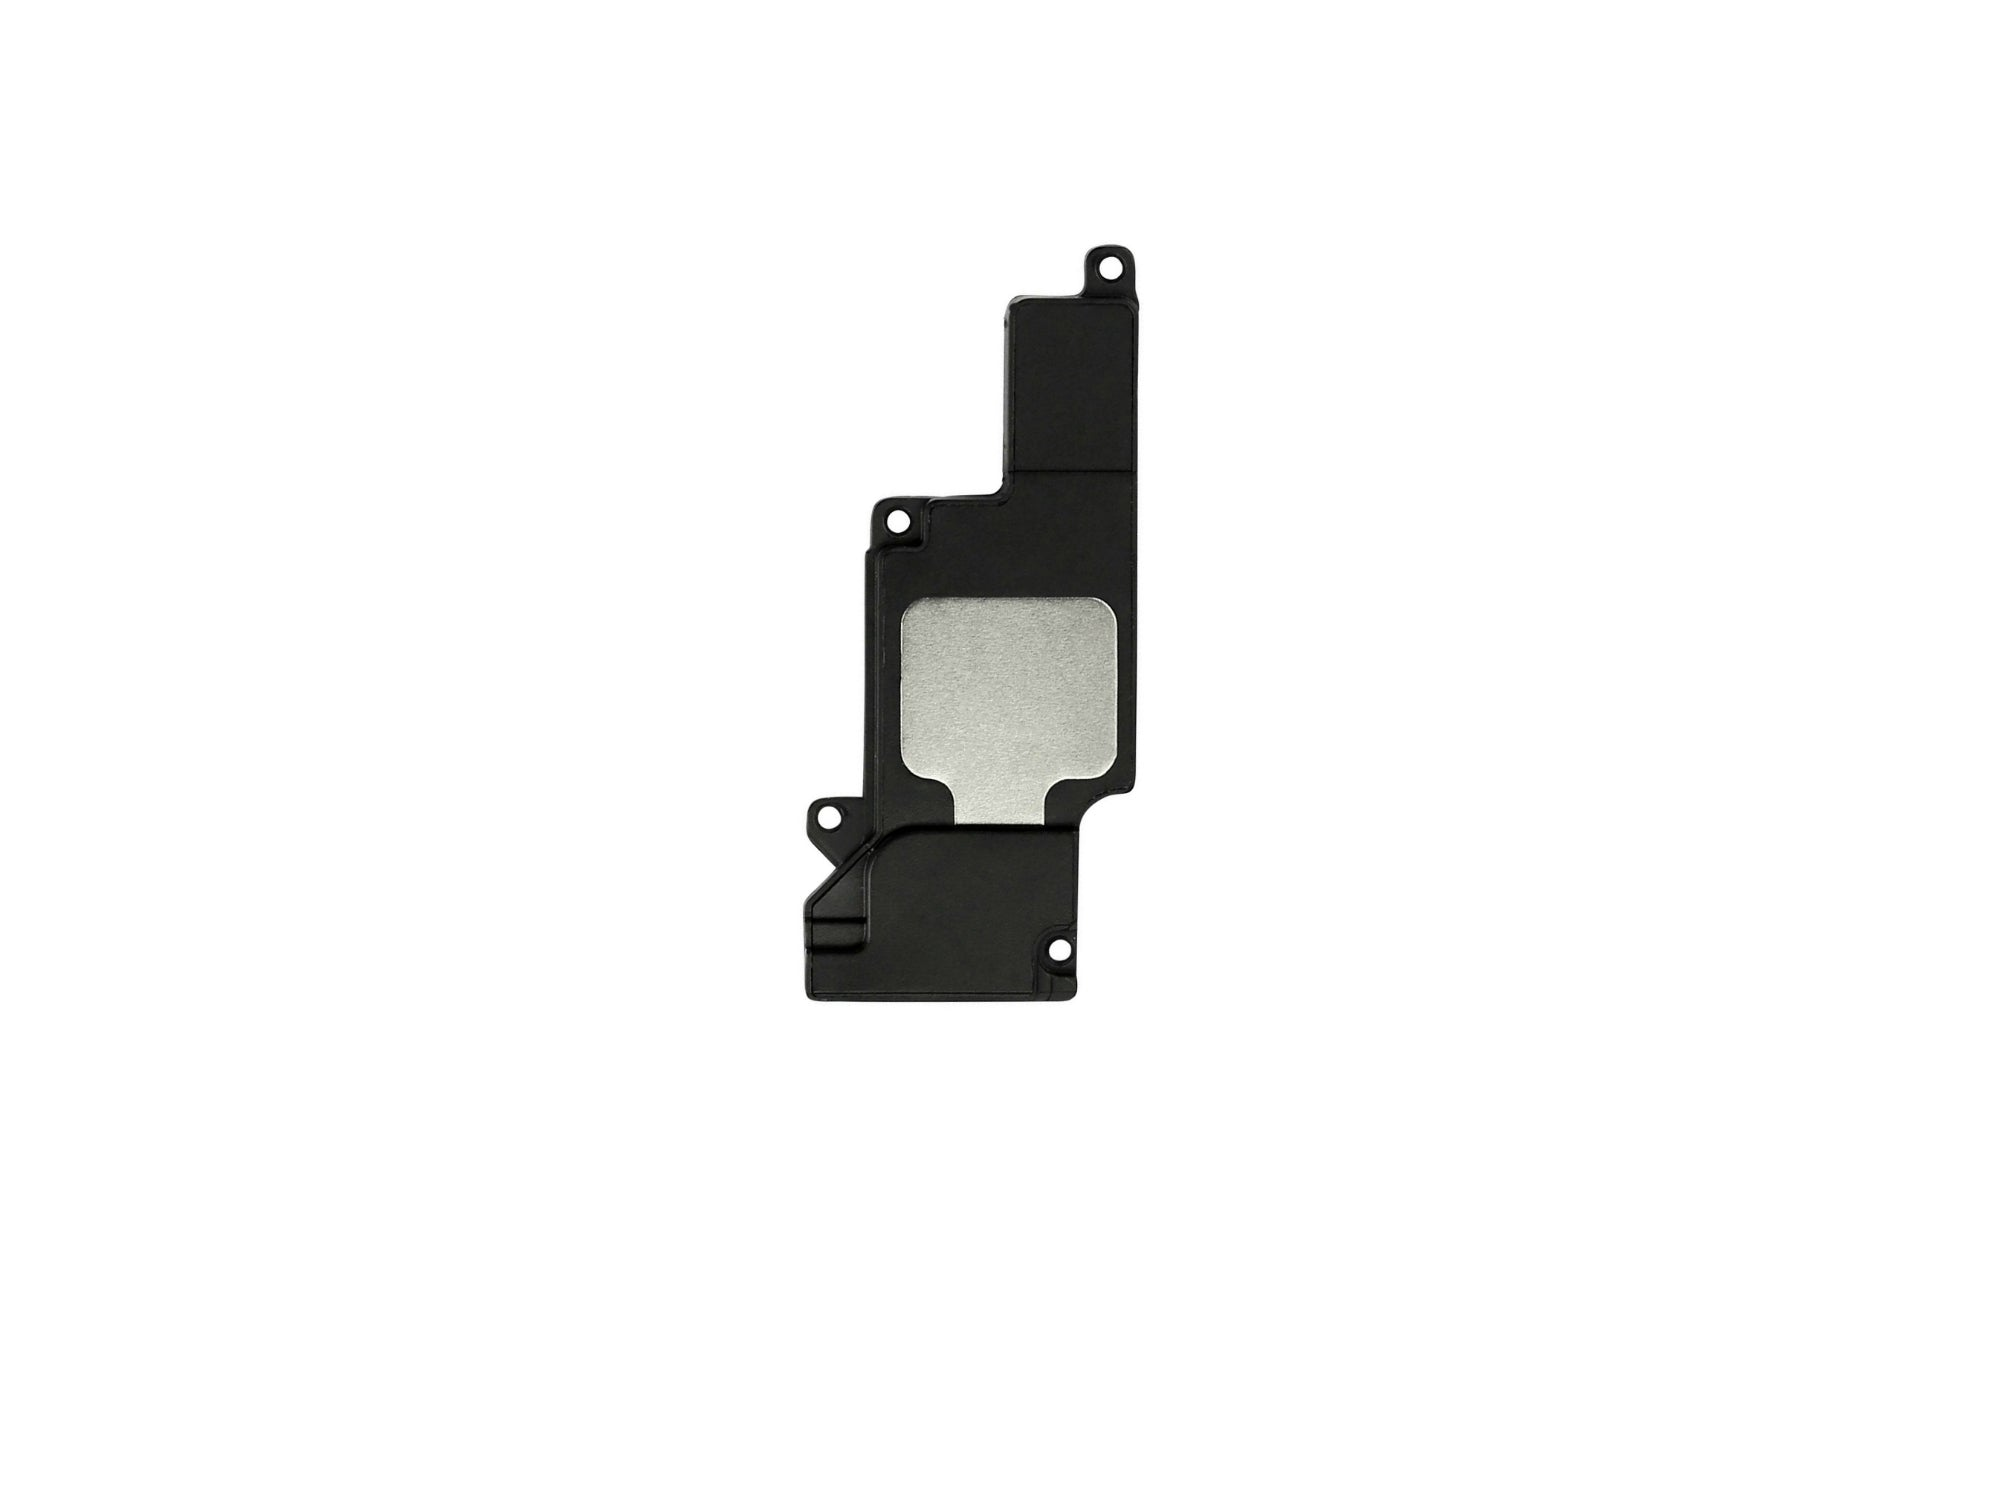 iPhone 6 Plus Loudspeaker Replacement Assembly